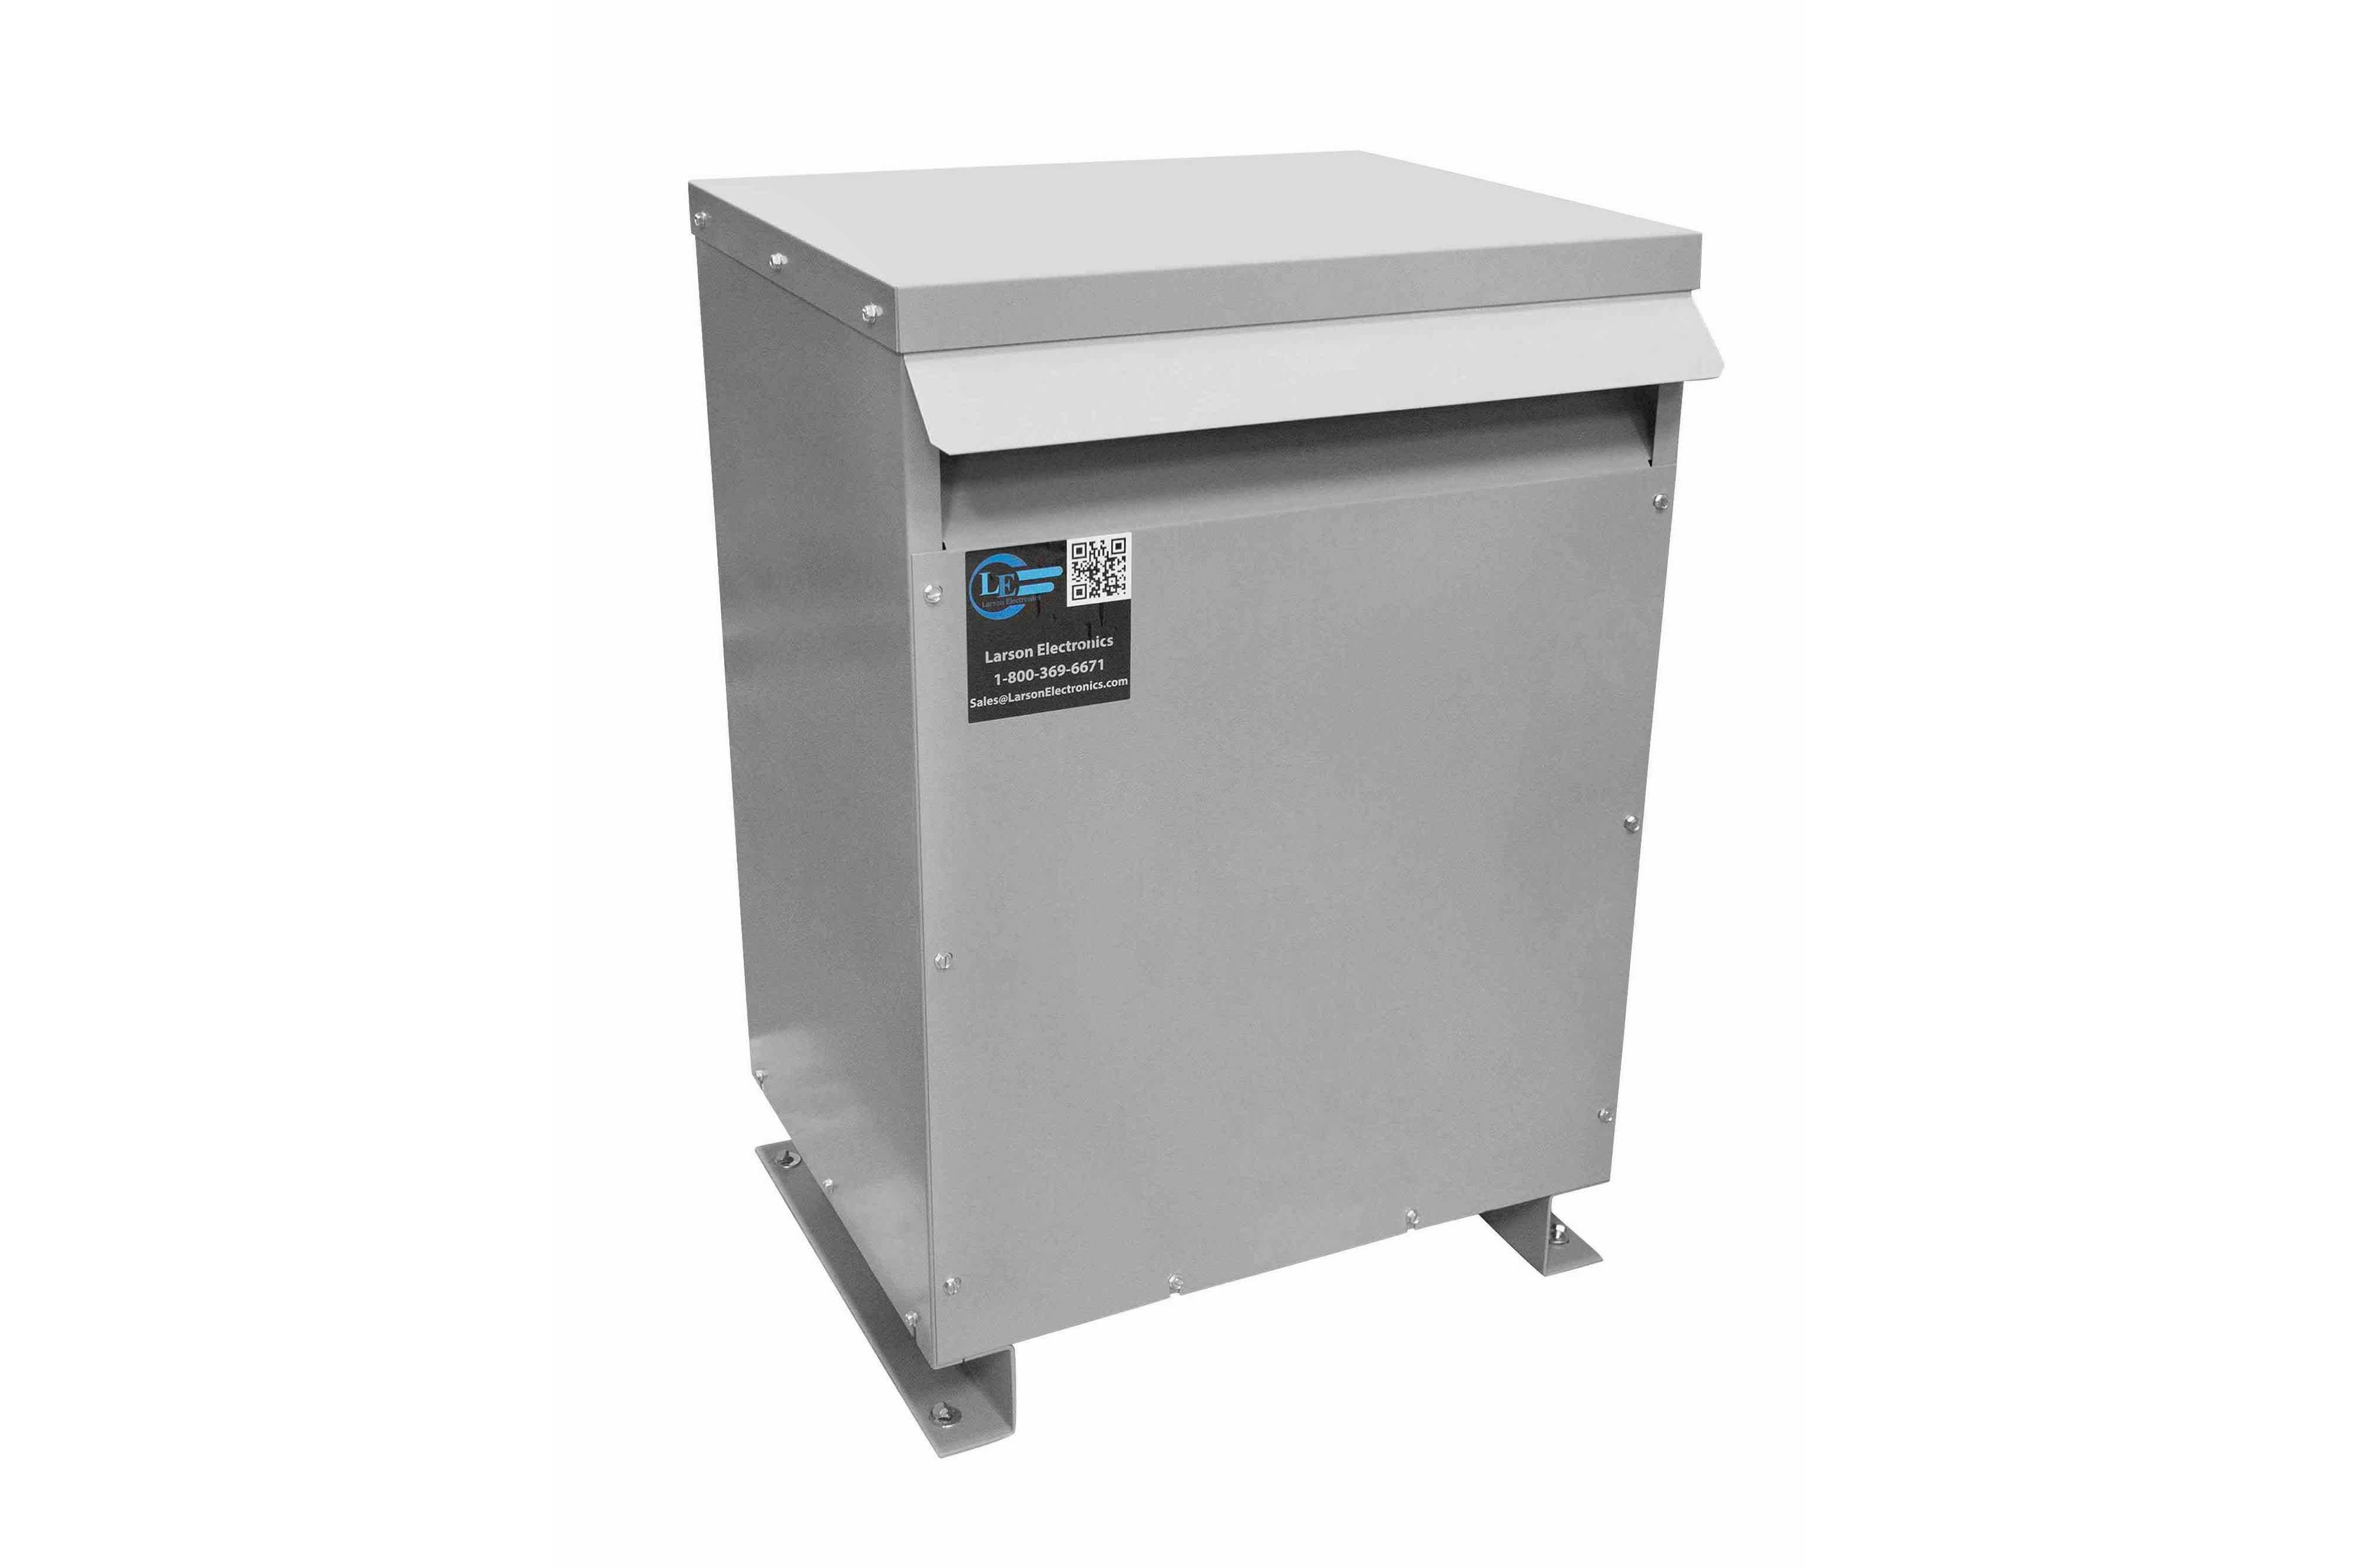 500 kVA 3PH Isolation Transformer, 208V Wye Primary, 415Y/240 Wye-N Secondary, N3R, Ventilated, 60 Hz